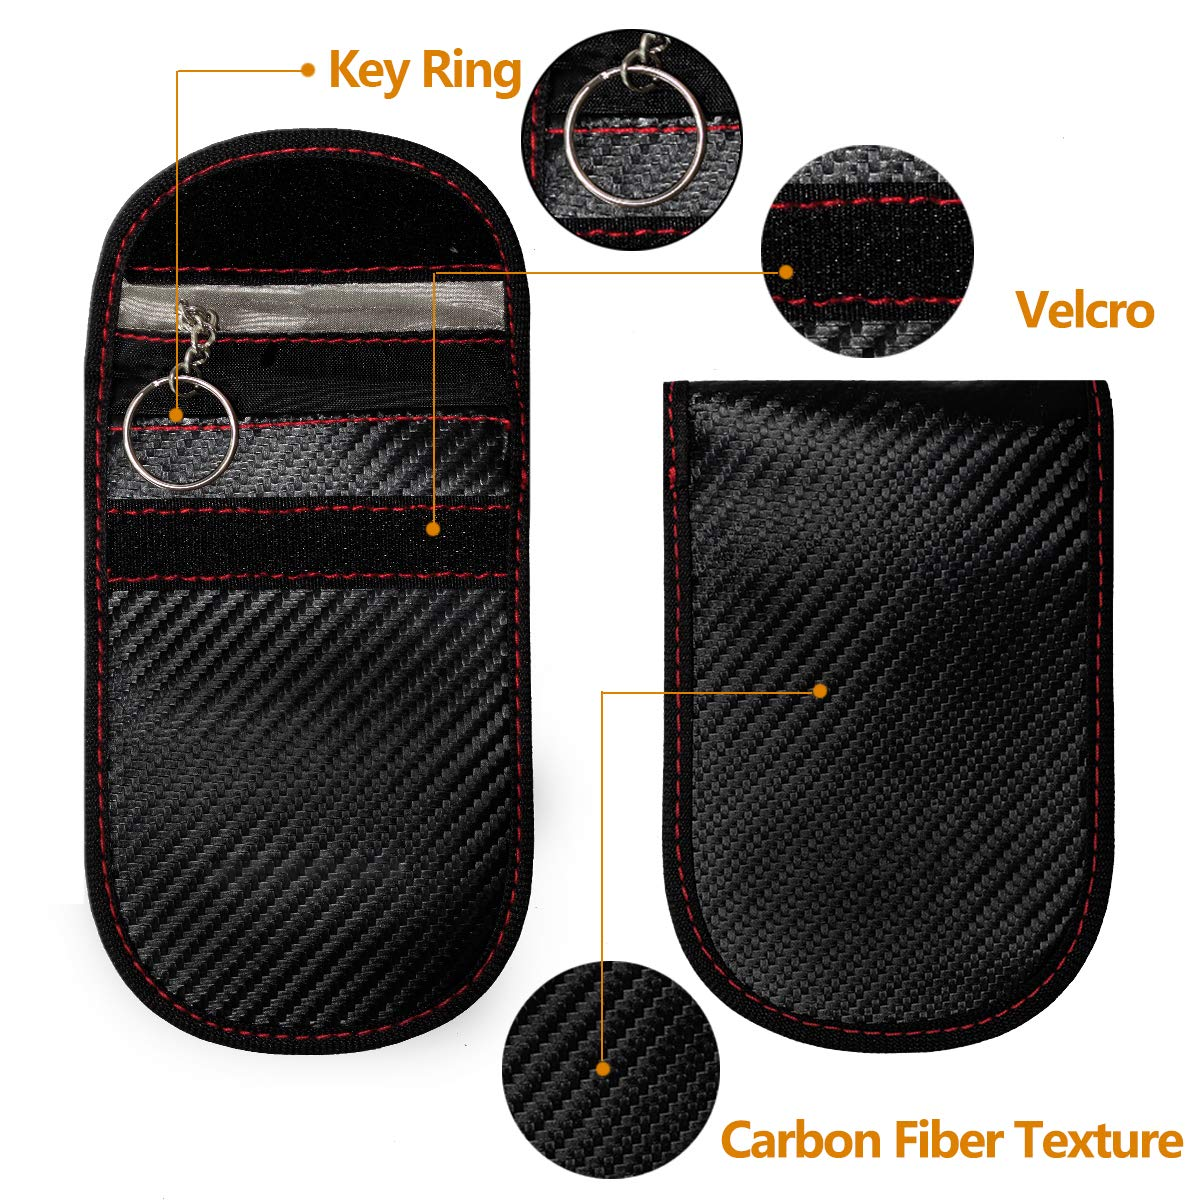 RFID Signal Blocker Carbon Fiber Texture Anti-Hacking Case ID Guard 2-Pack UCIN Faraday Key Fob Bag Antitheft Card Pouch Security Wallet for Remote Car Starter Car Key Protector